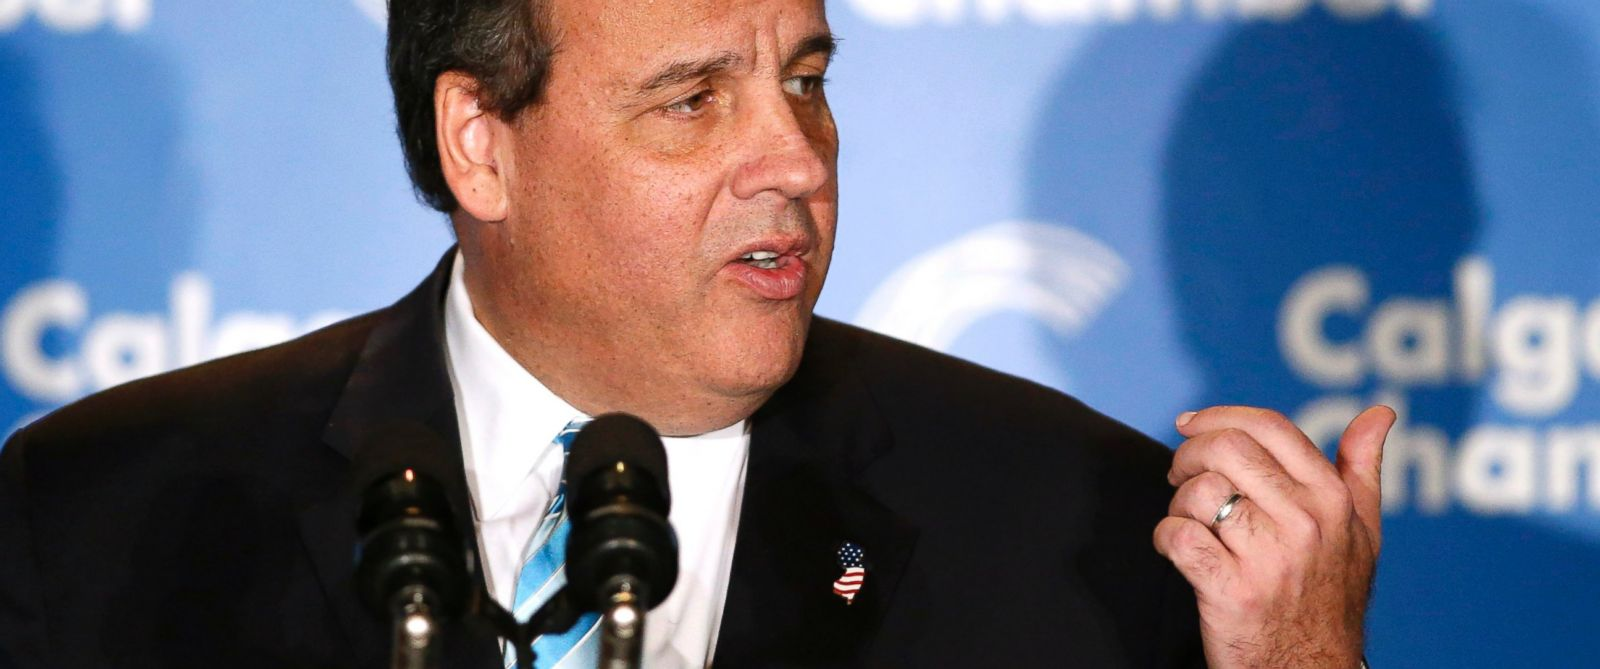 PHOTO: New Jersey Gov. Chris Christie speaks at the Energy Sector Luncheon in Calgary, Alberta on Dec. 4, 2014.